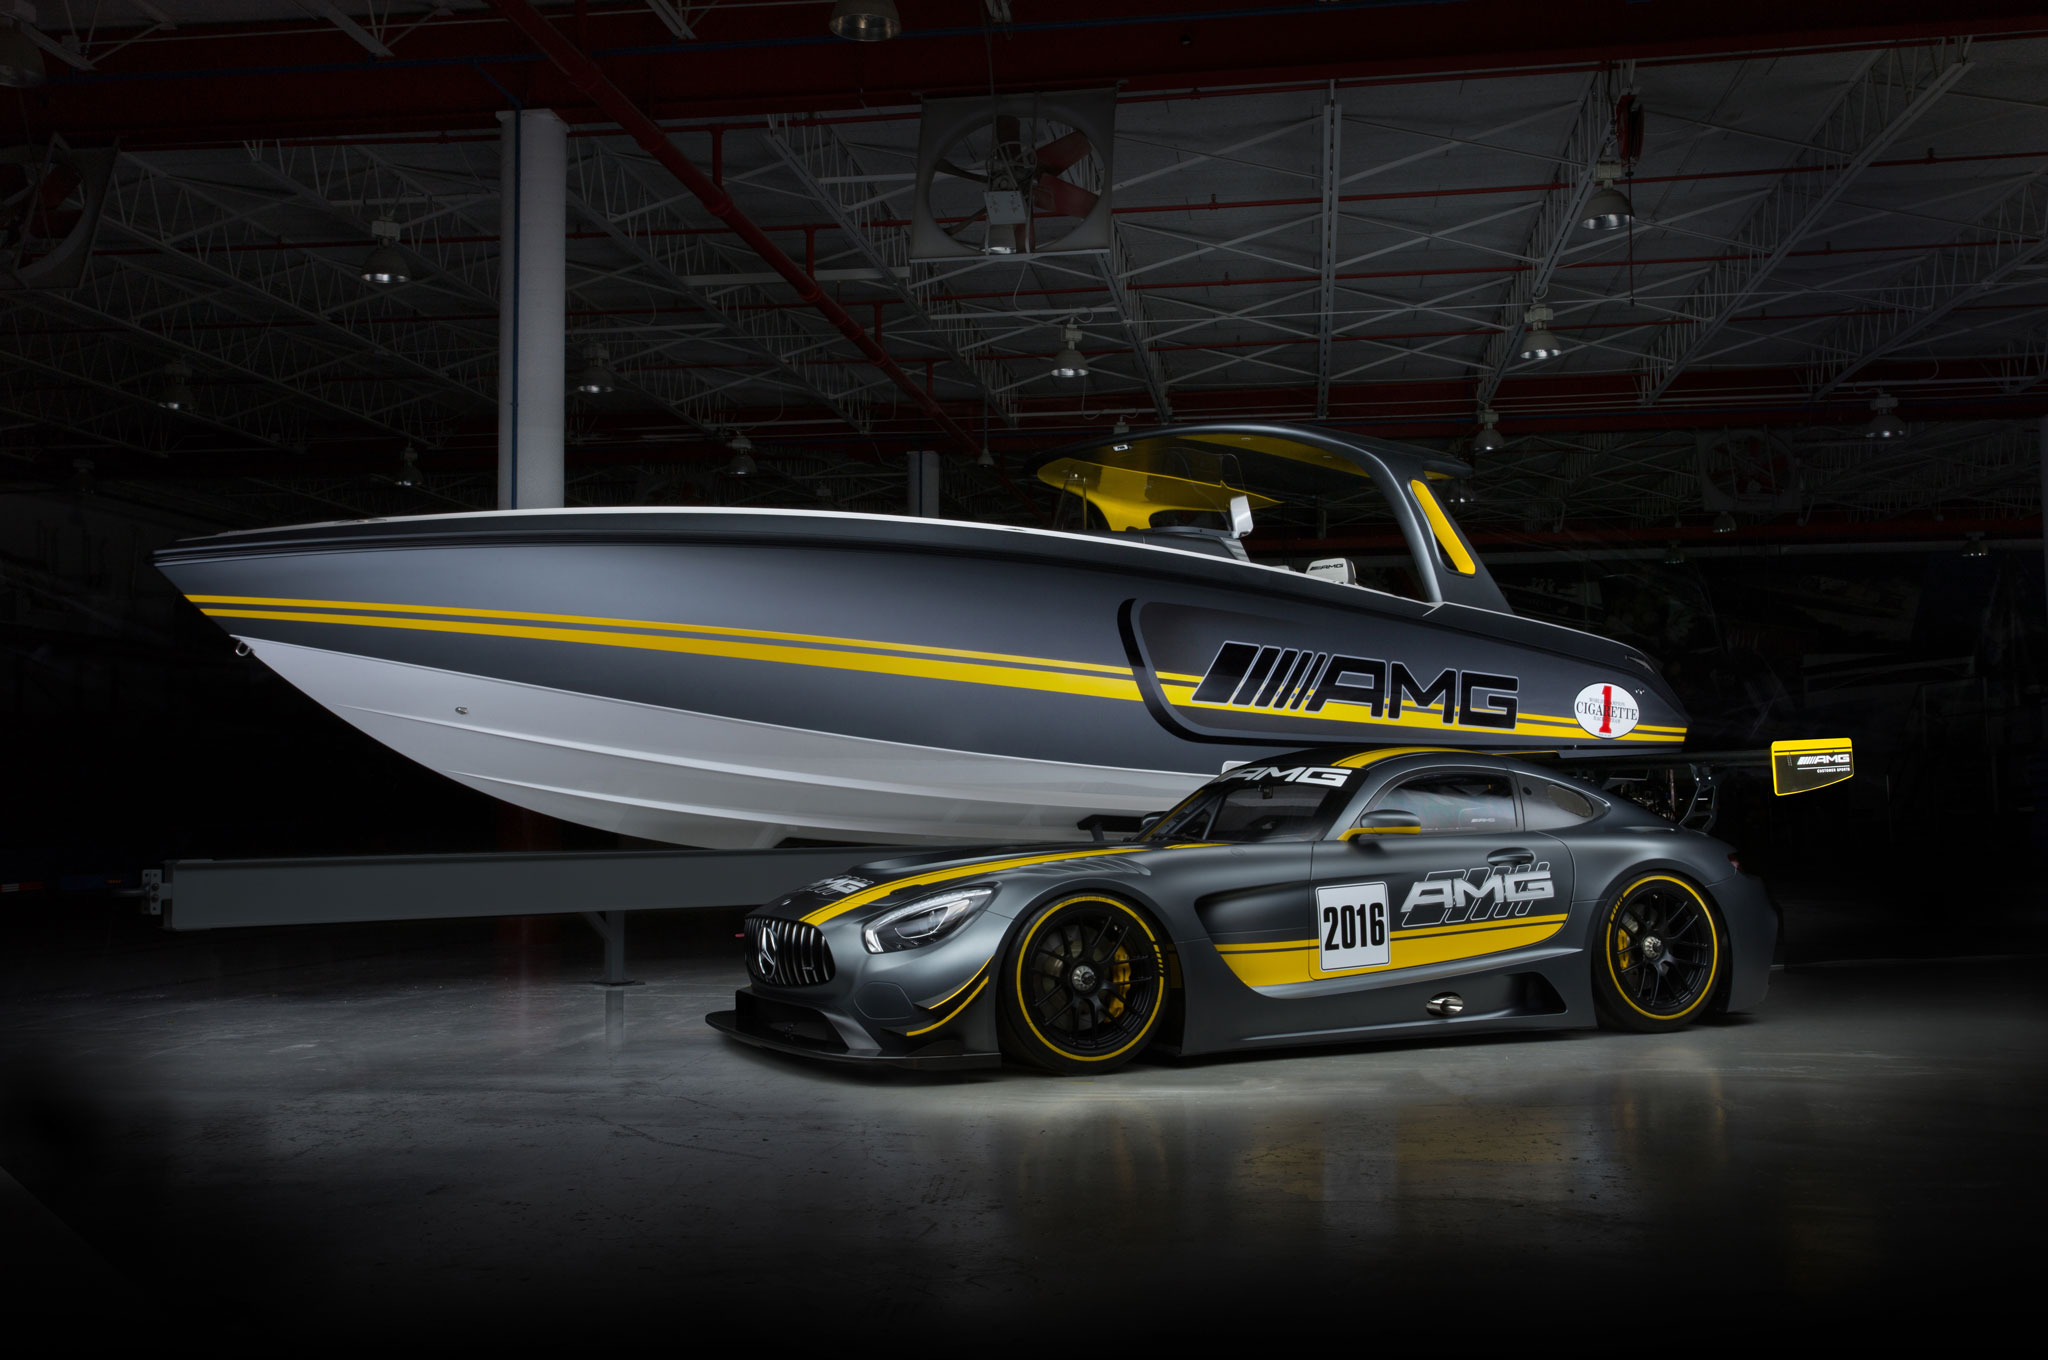 Cigarette Racing Team 41 Foot SD GT3 Boat And Mercedes AMG GT3 Racecar